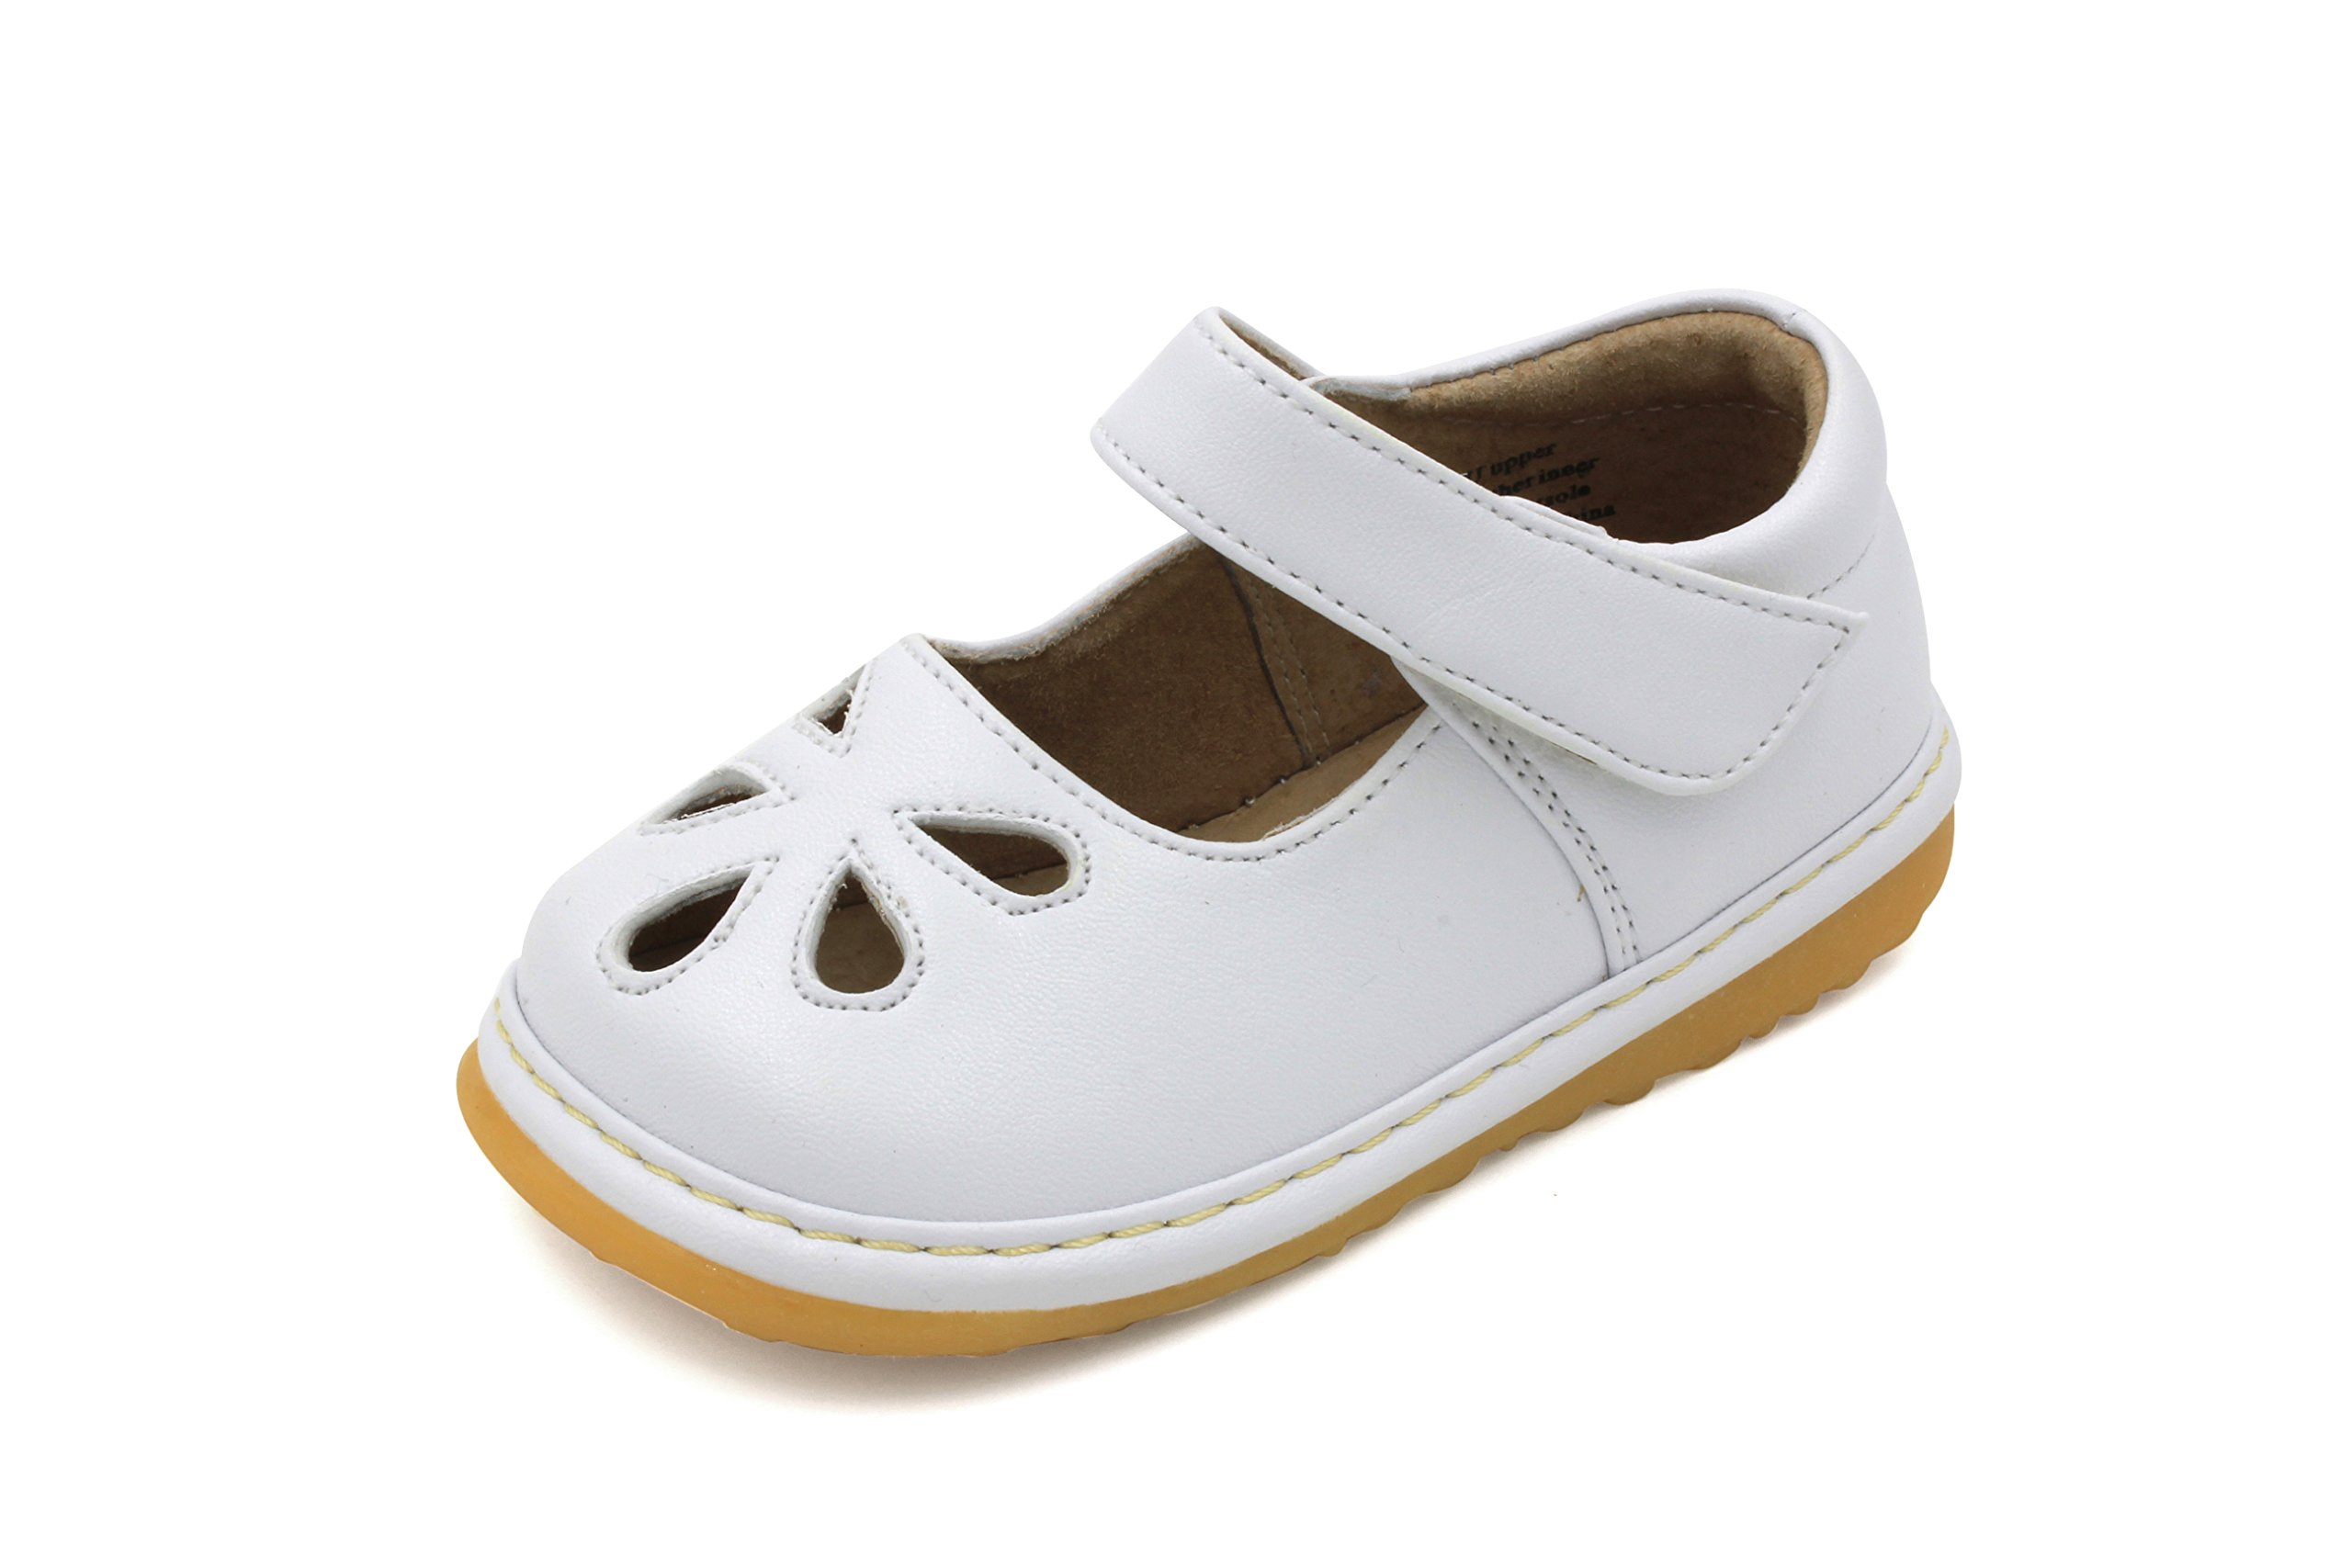 Toddler Shoes | Squeaky White Flower Punch Mary Jane Toddler Girl Shoes |  Premium Quality (